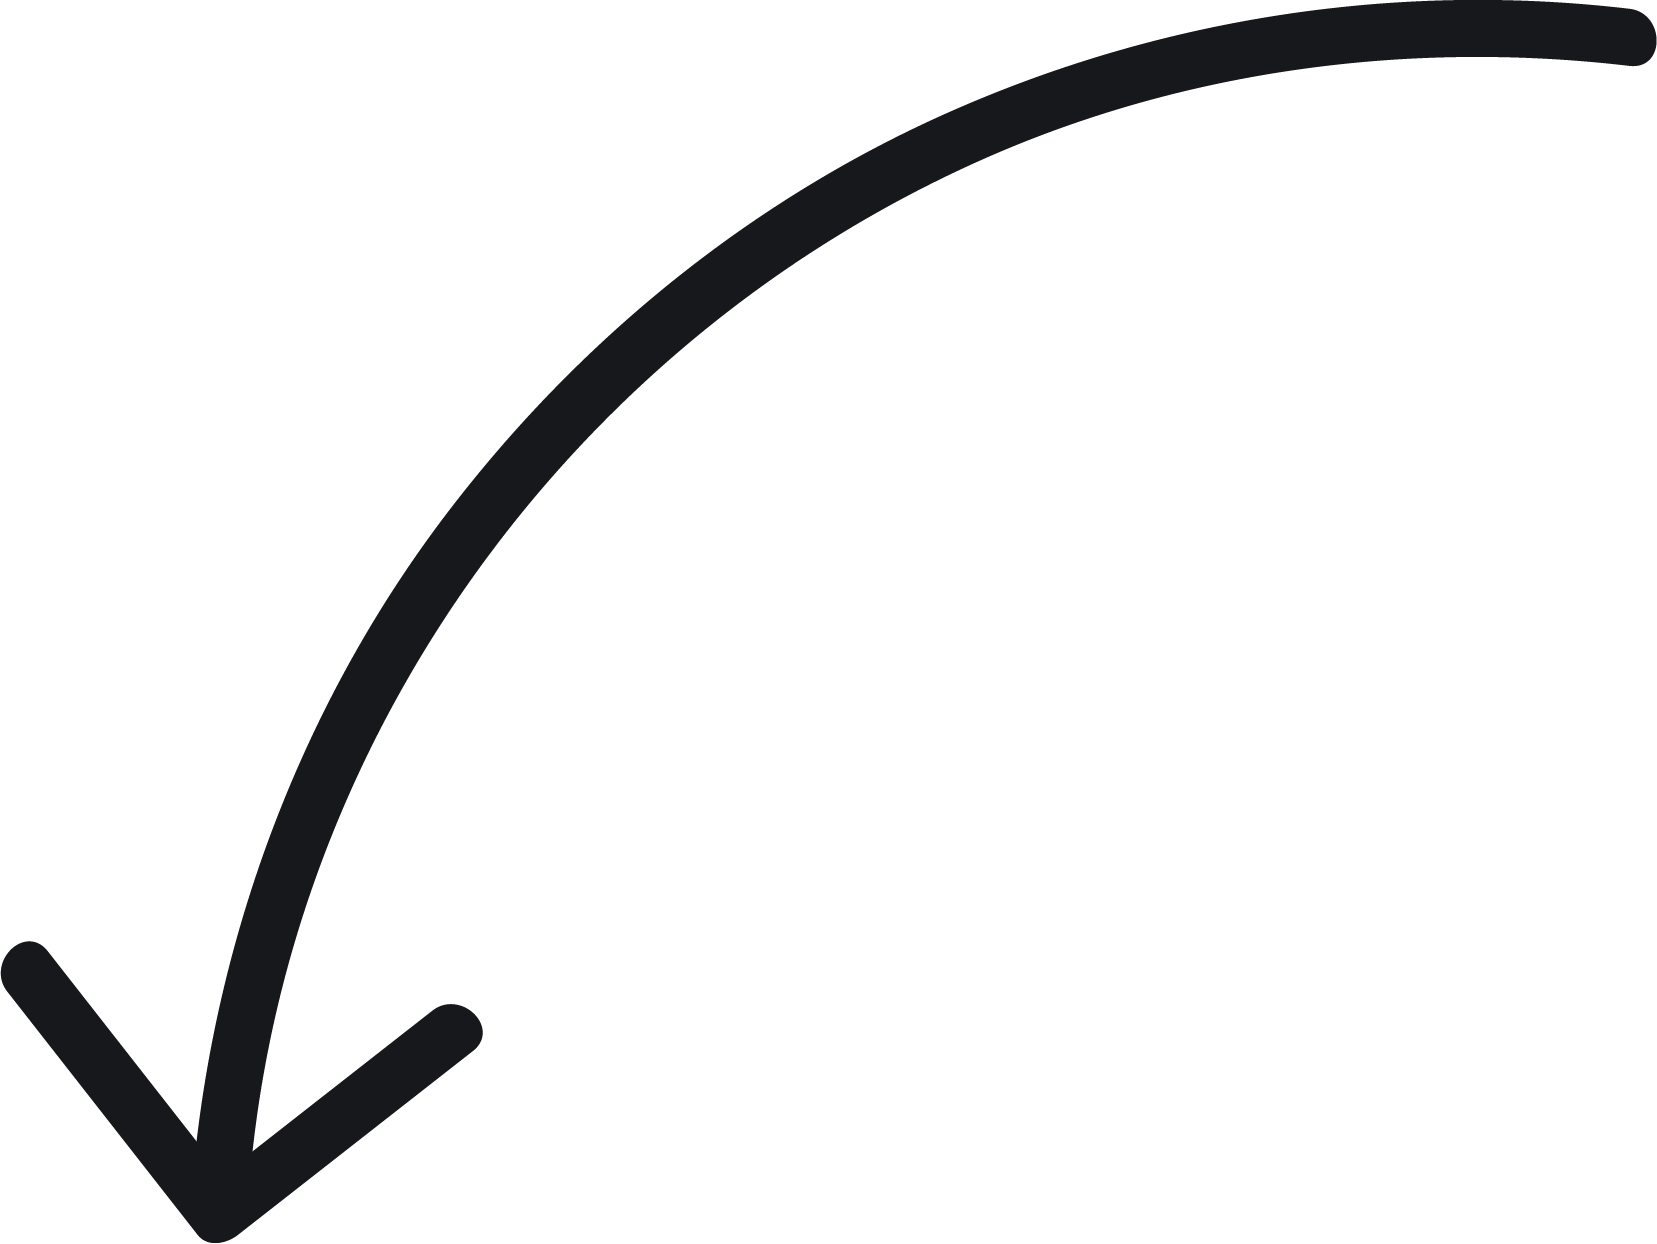 Curved arrows png. Arrow curve tool transprent